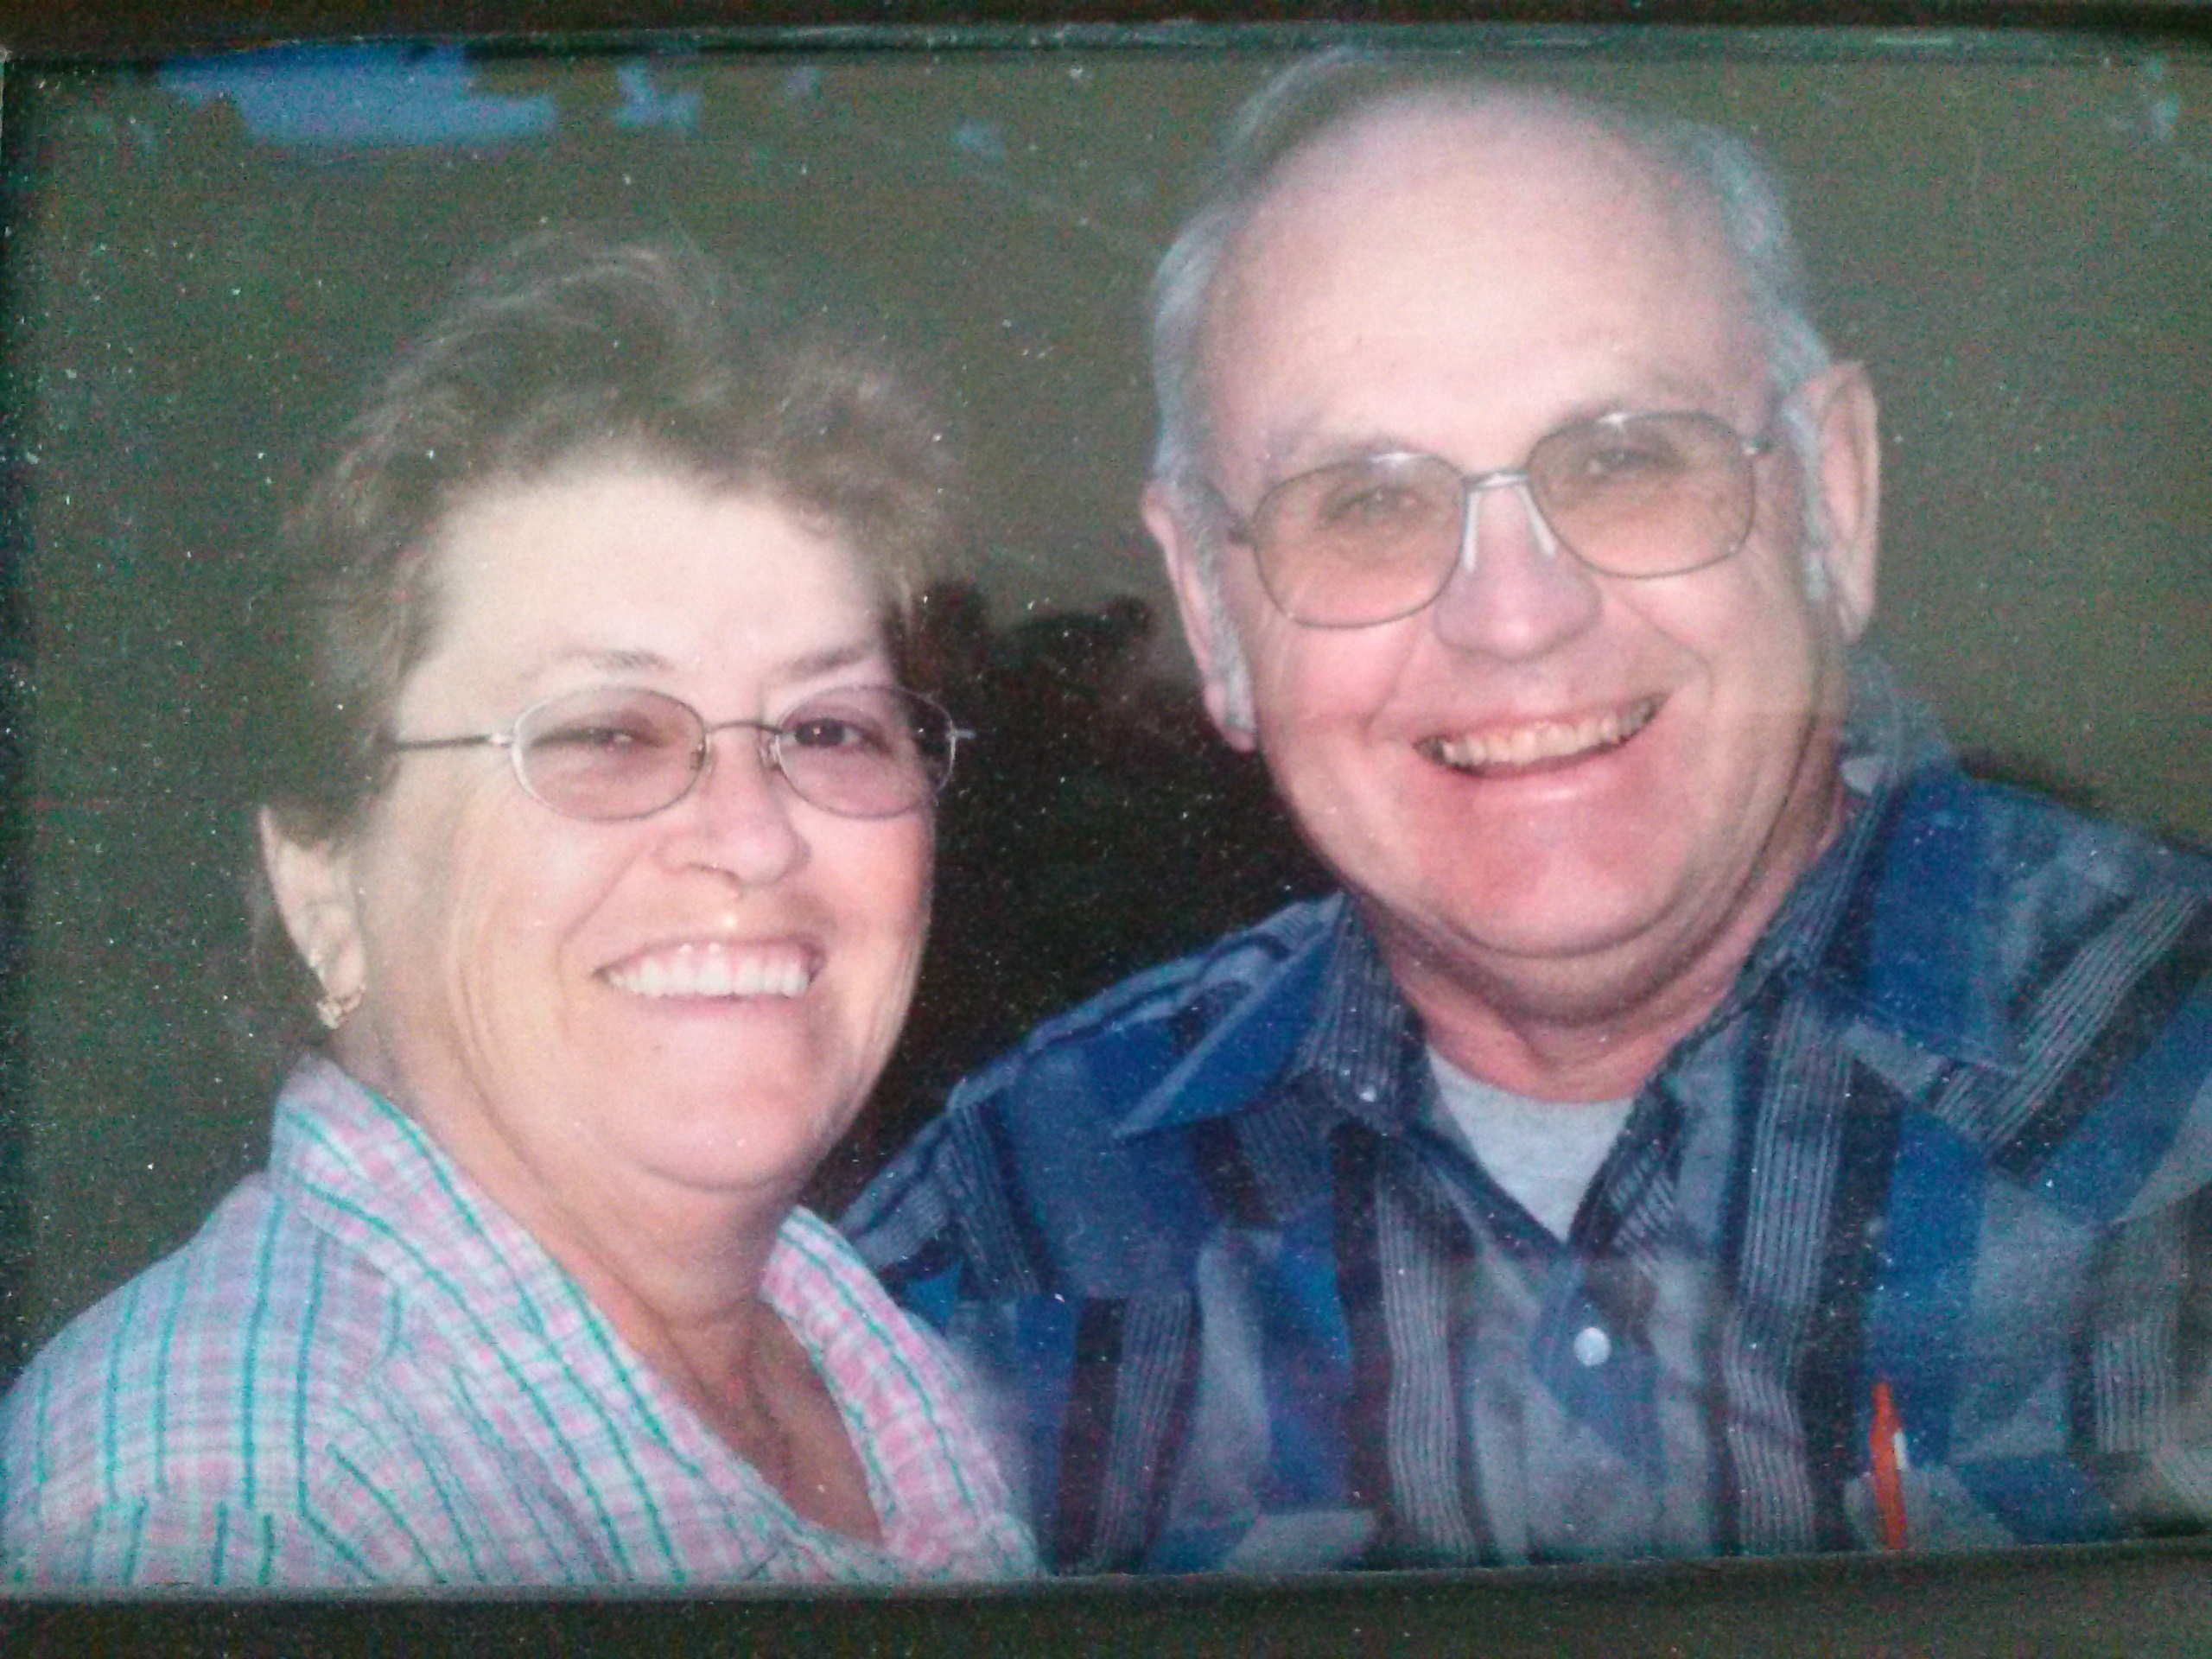 Larry and Debra Cartmell